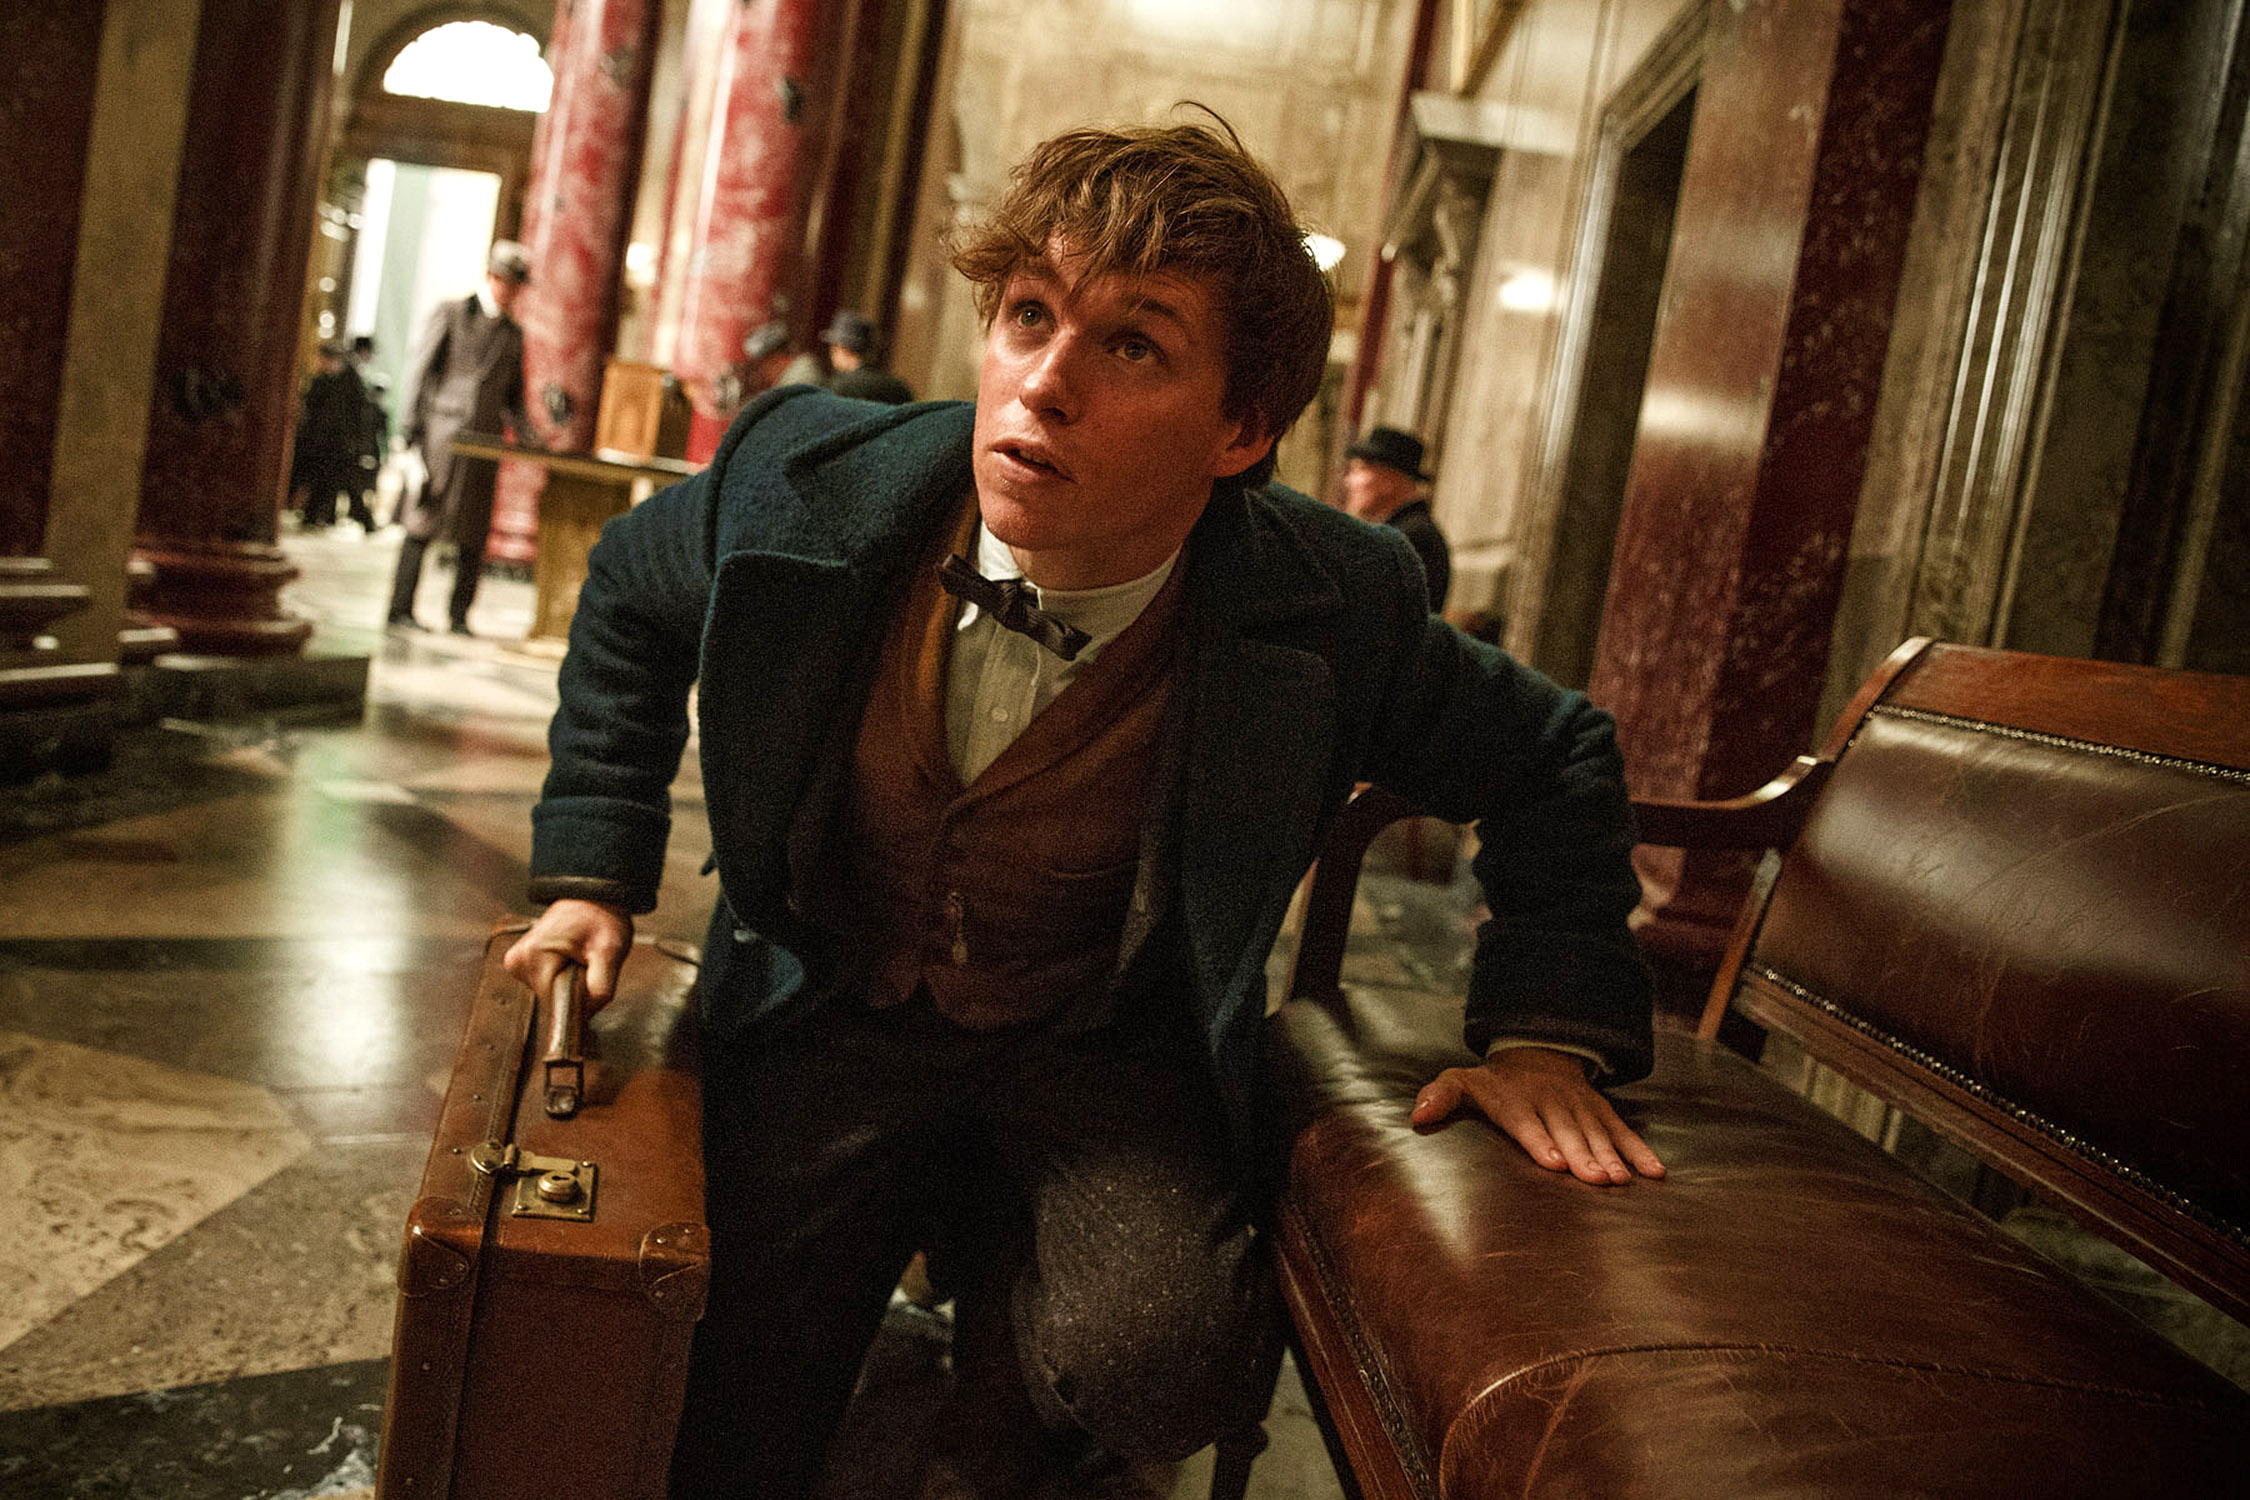 Eddie Redmayne as Newt Scamander in 'Fantastic Beasts' WB FB-01108A